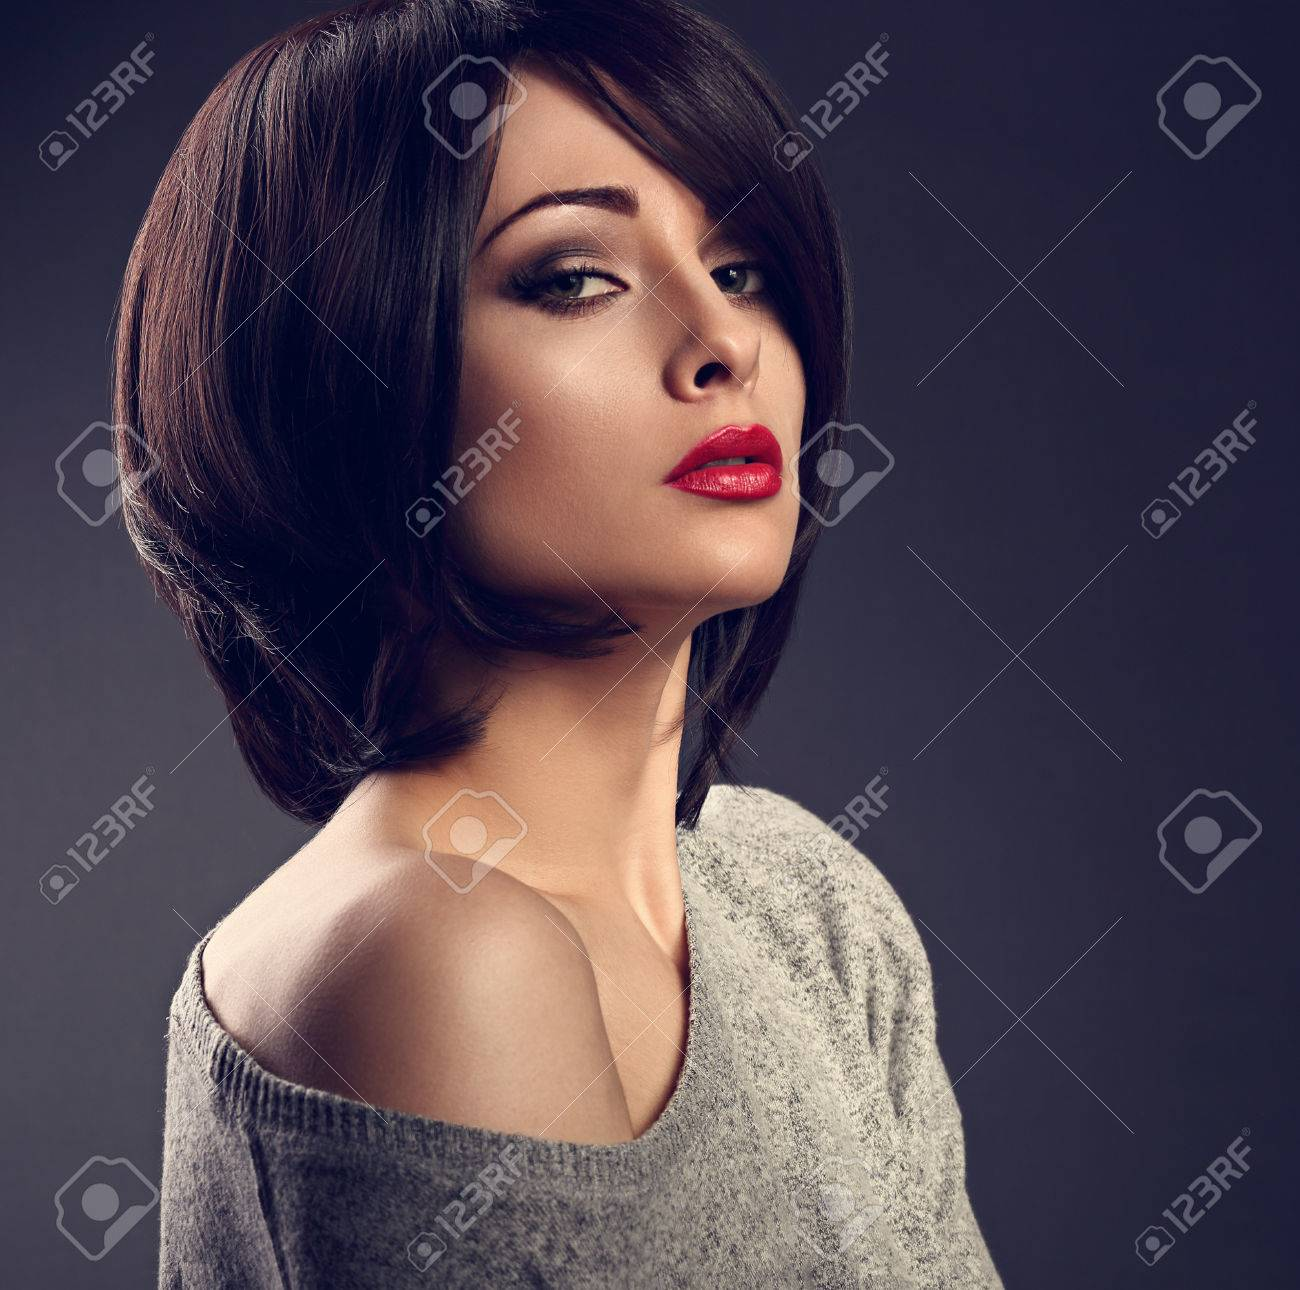 Beautiful Makeup Sexy Woman With Short Hair Style With Hot Red Stock Photo Picture And Royalty Free Image Image 83816870